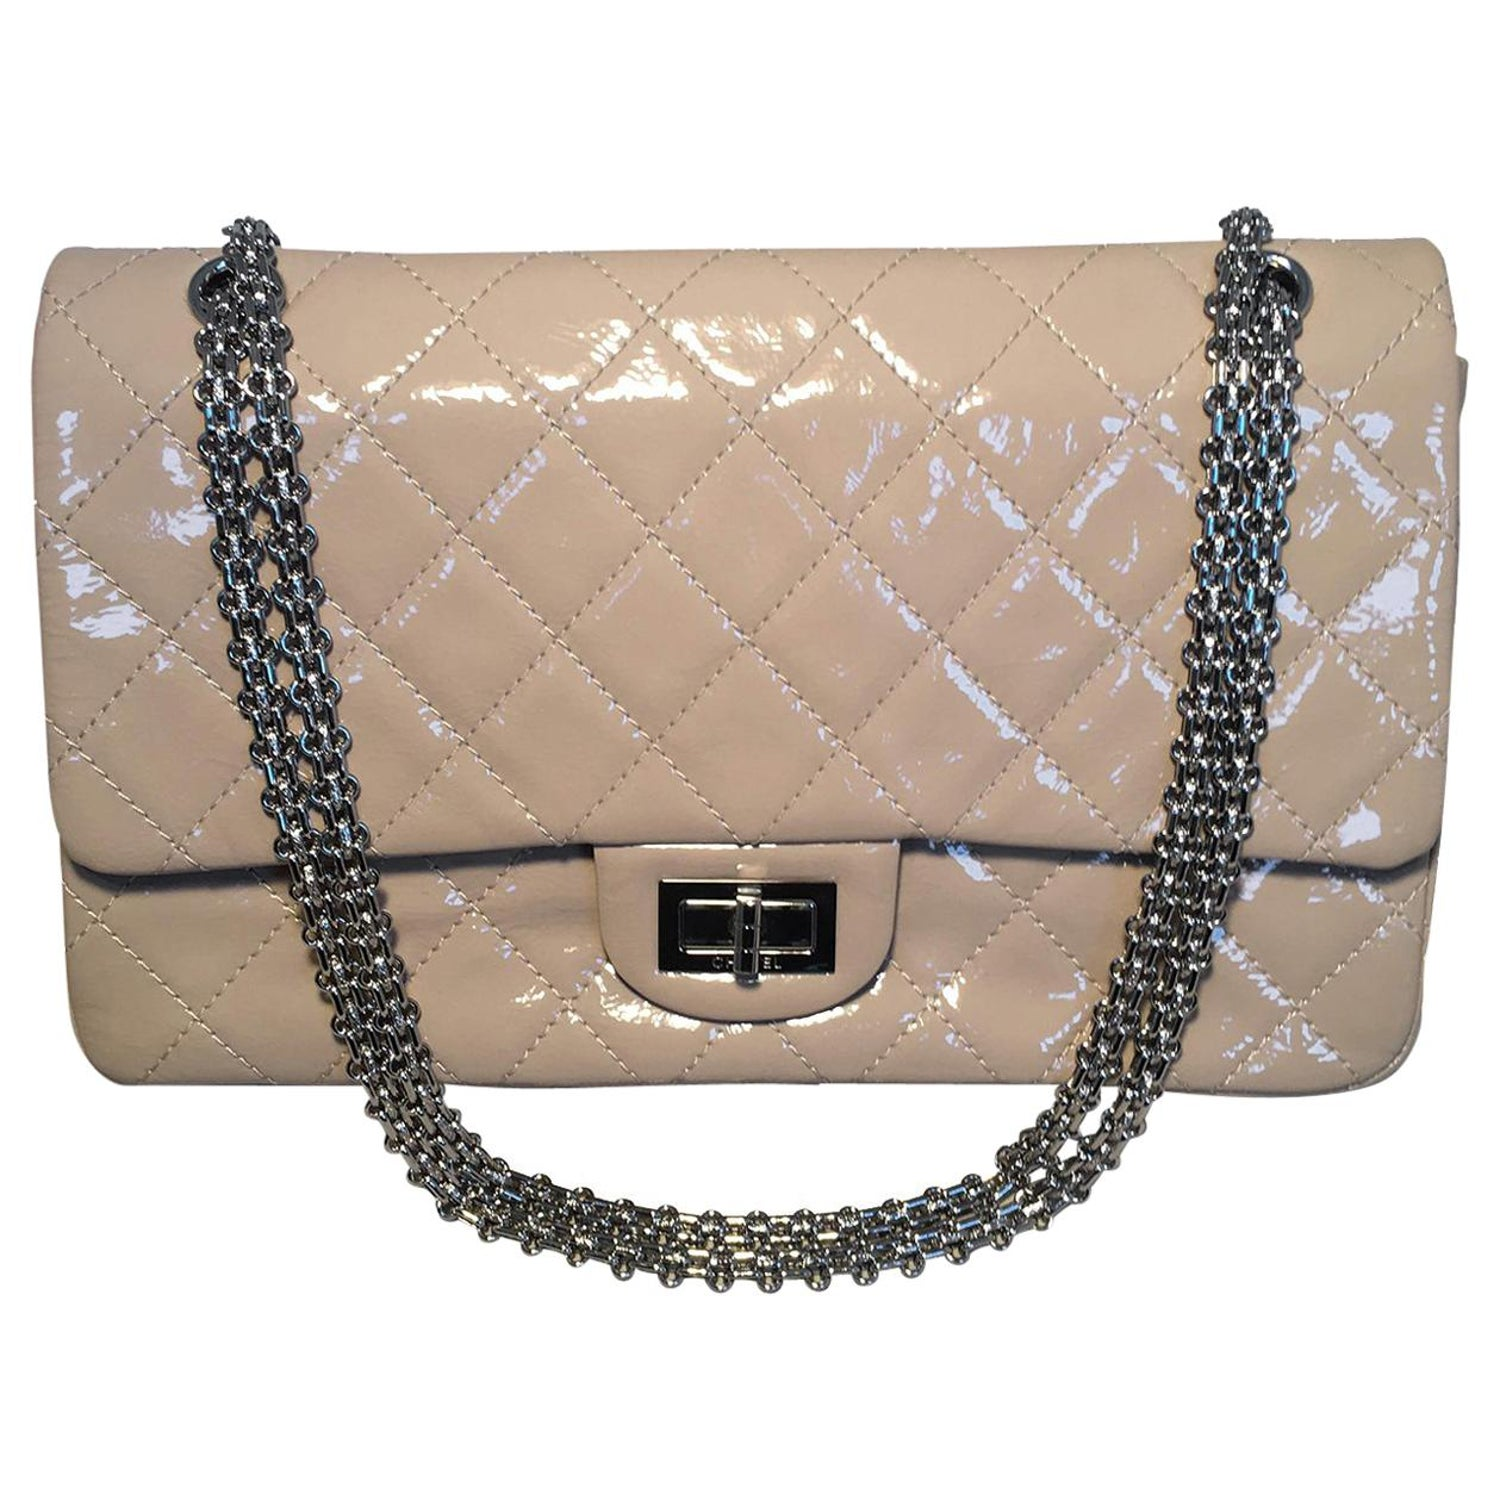 2ff0b2a0ccb194 Chanel Beige Distressed Patent 2.55 Reissue 227 Double Flap Classic For Sale  at 1stdibs